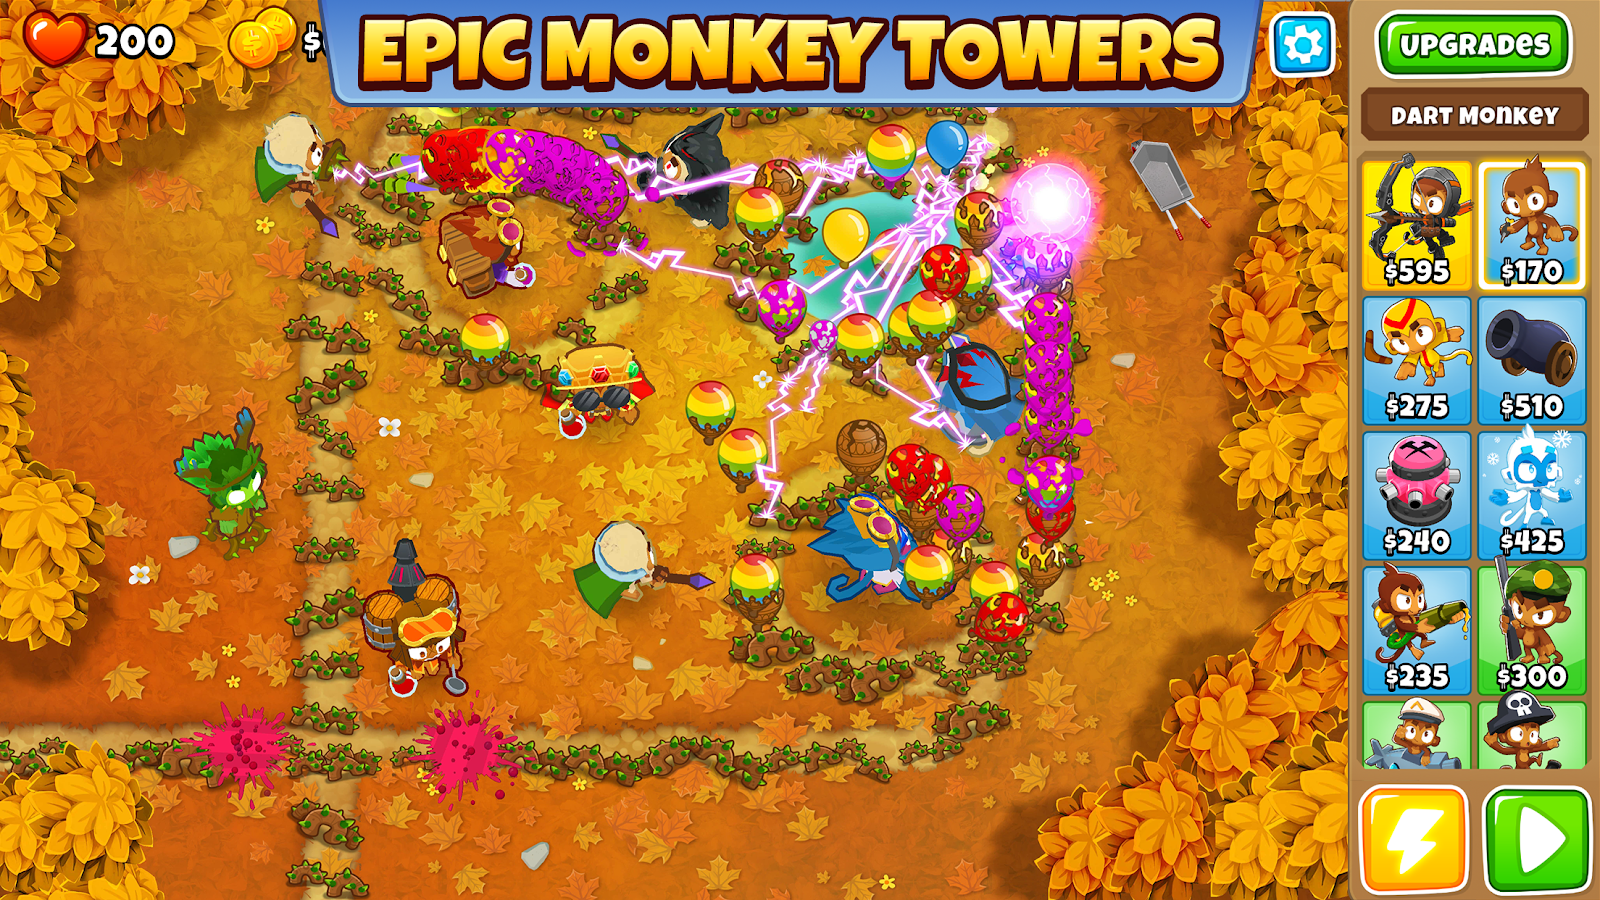 bloons monkey city apk mod 1.11.4